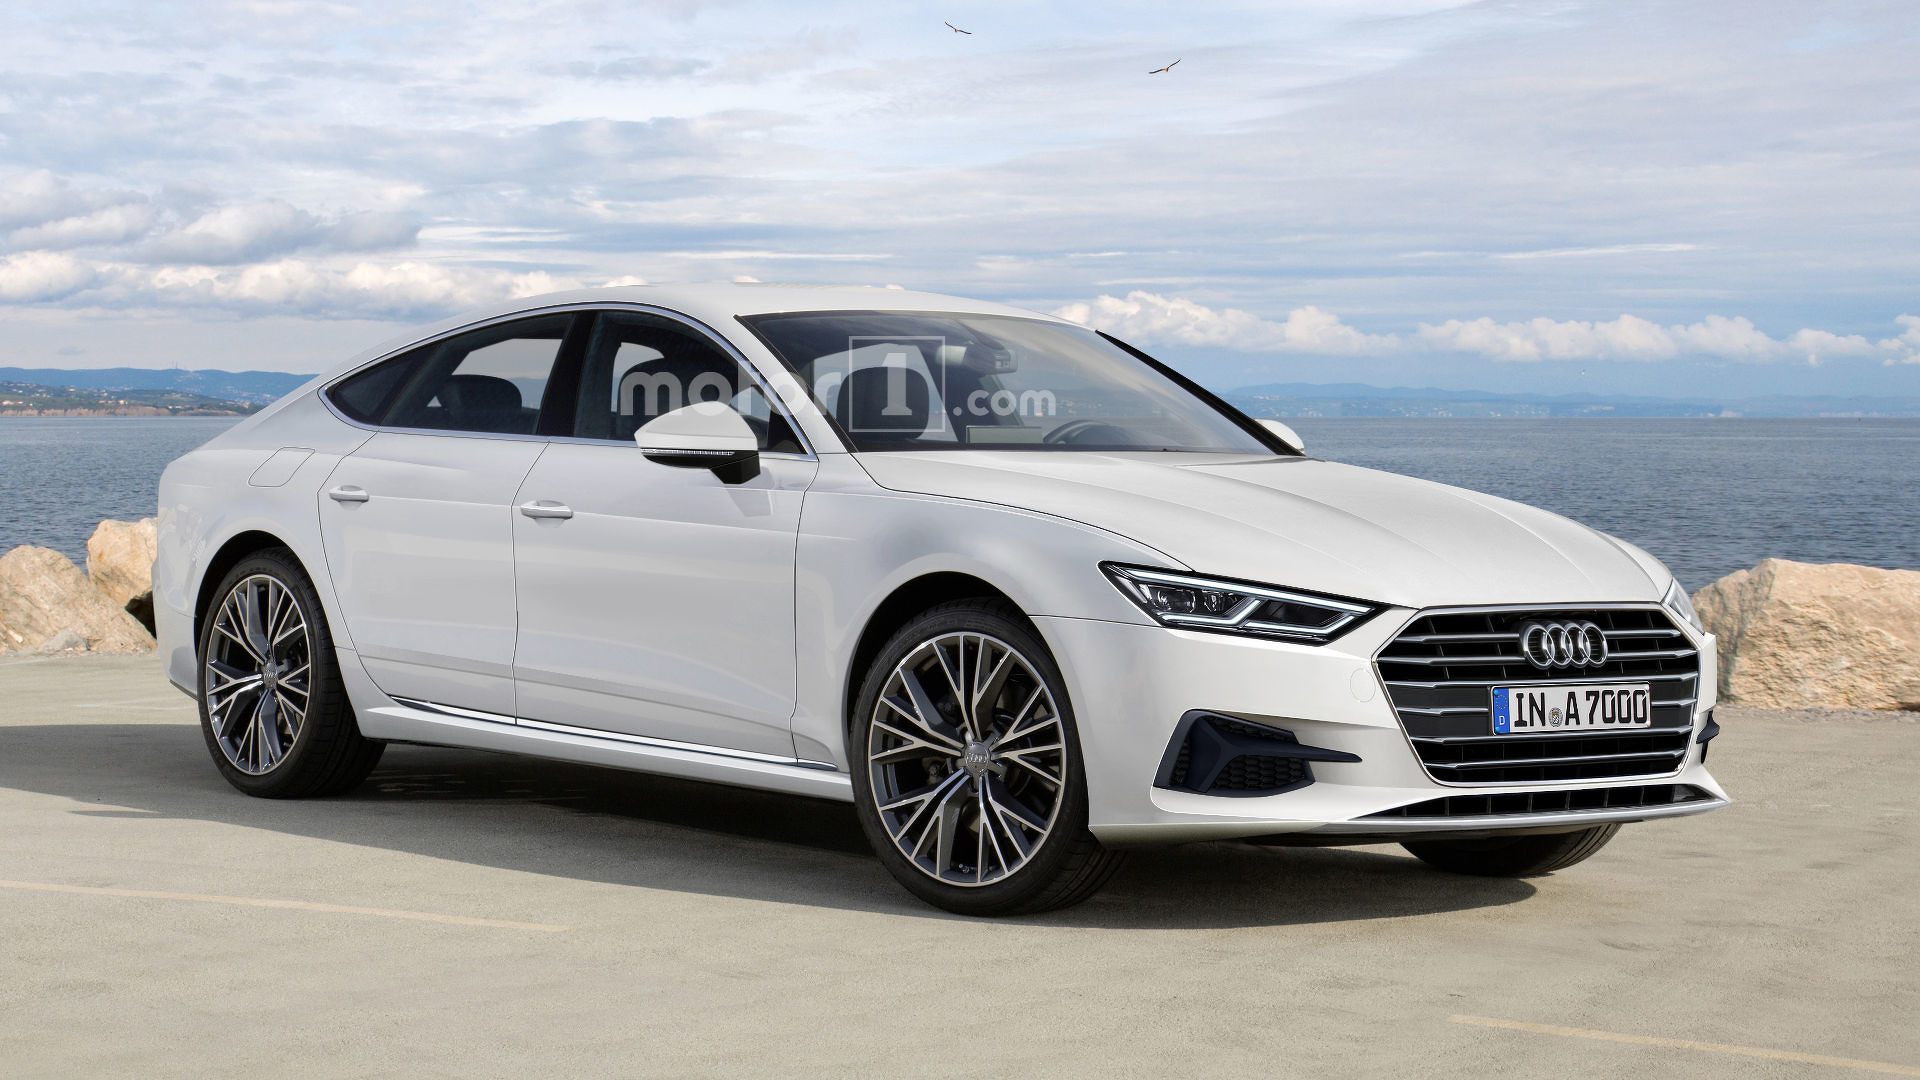 Will The 2019 Audi A7 Sportback Look As Sharp As This